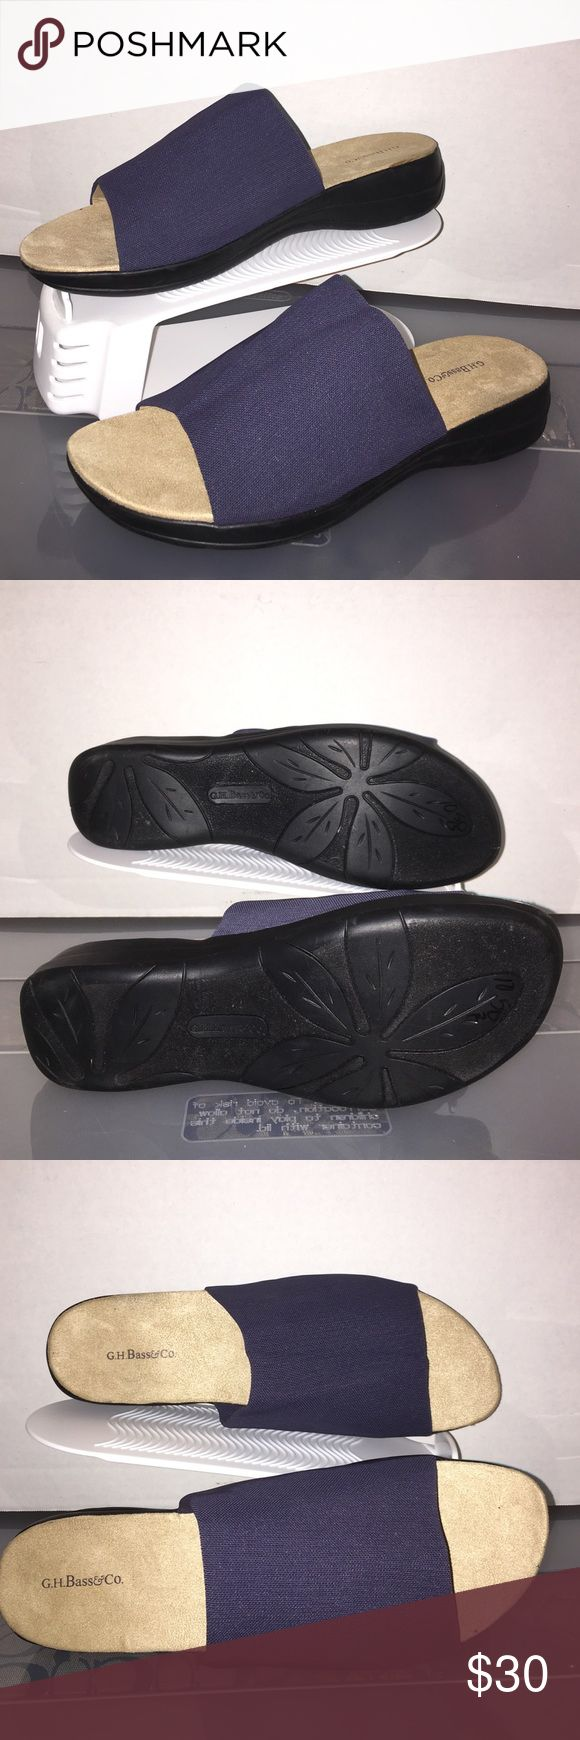 """Clarks New Women's """"Gemma"""" Clarks sandals. Navy blue fabric and tan suede soles. Size 10M Clarks Shoes Sandals"""